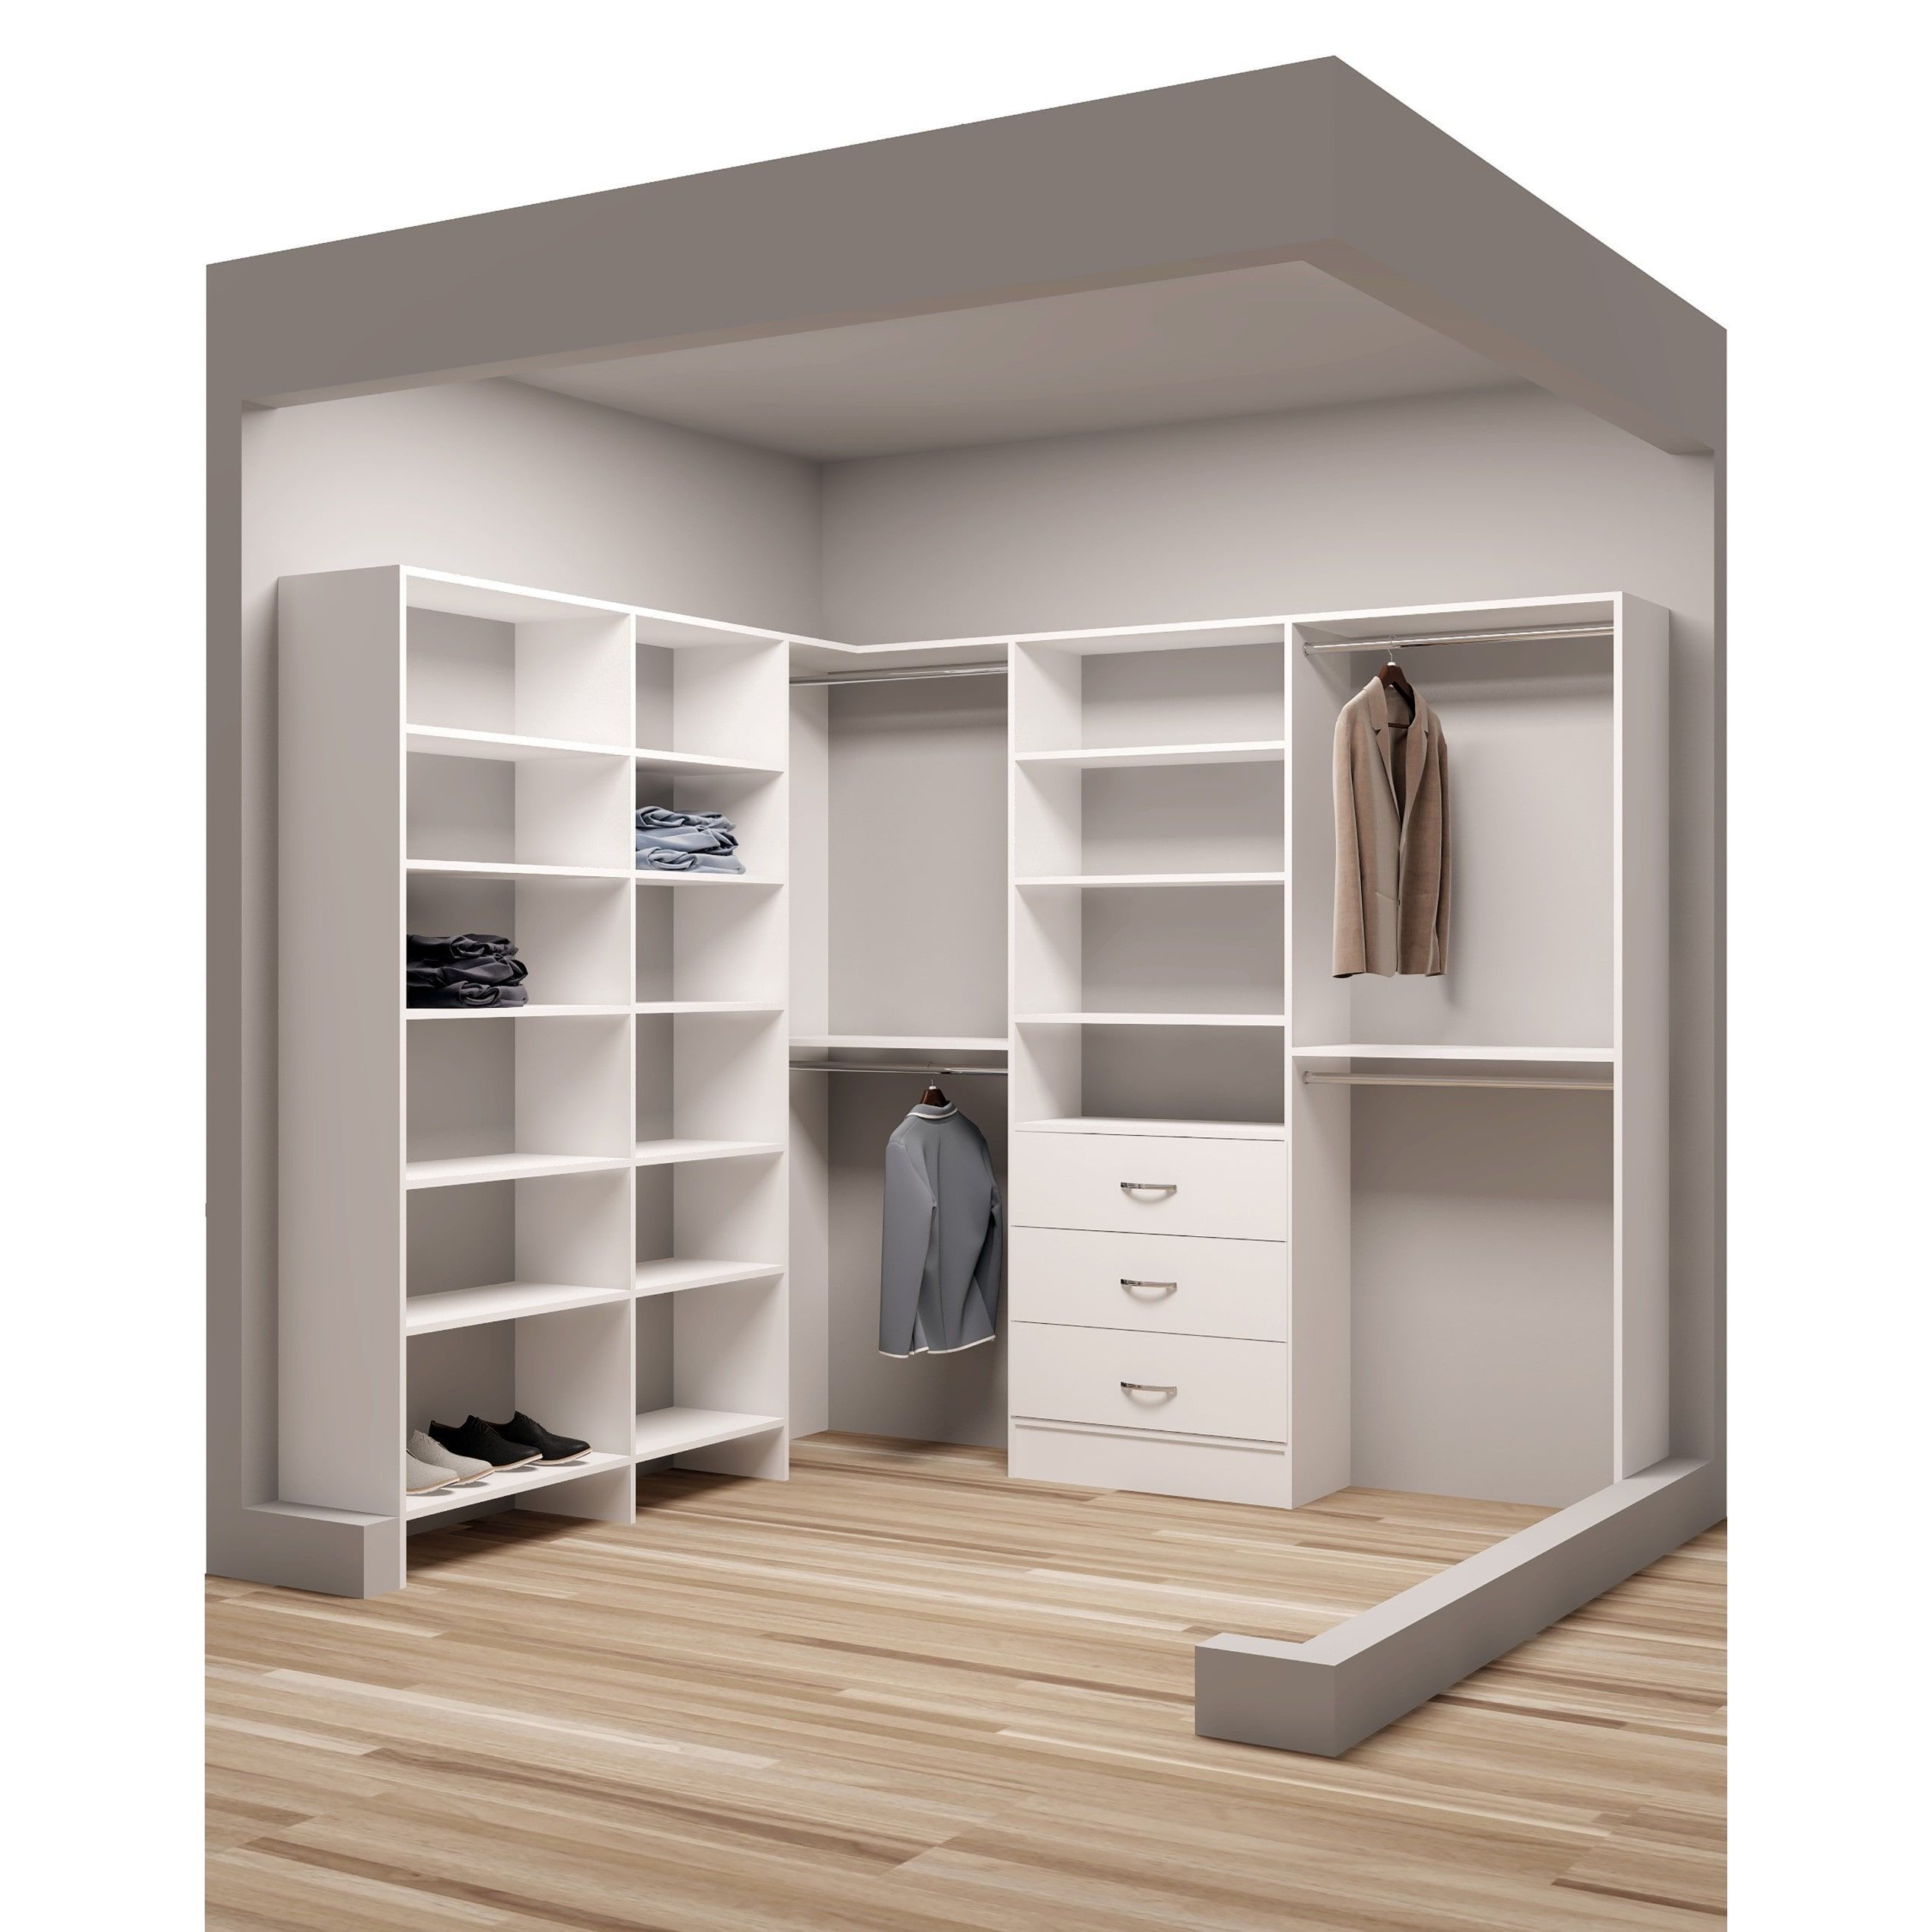 Overstock Com Online Shopping Bedding Furniture Electronics Jewelry Clothing More Closet System Closet Organizing Systems Closet Planning